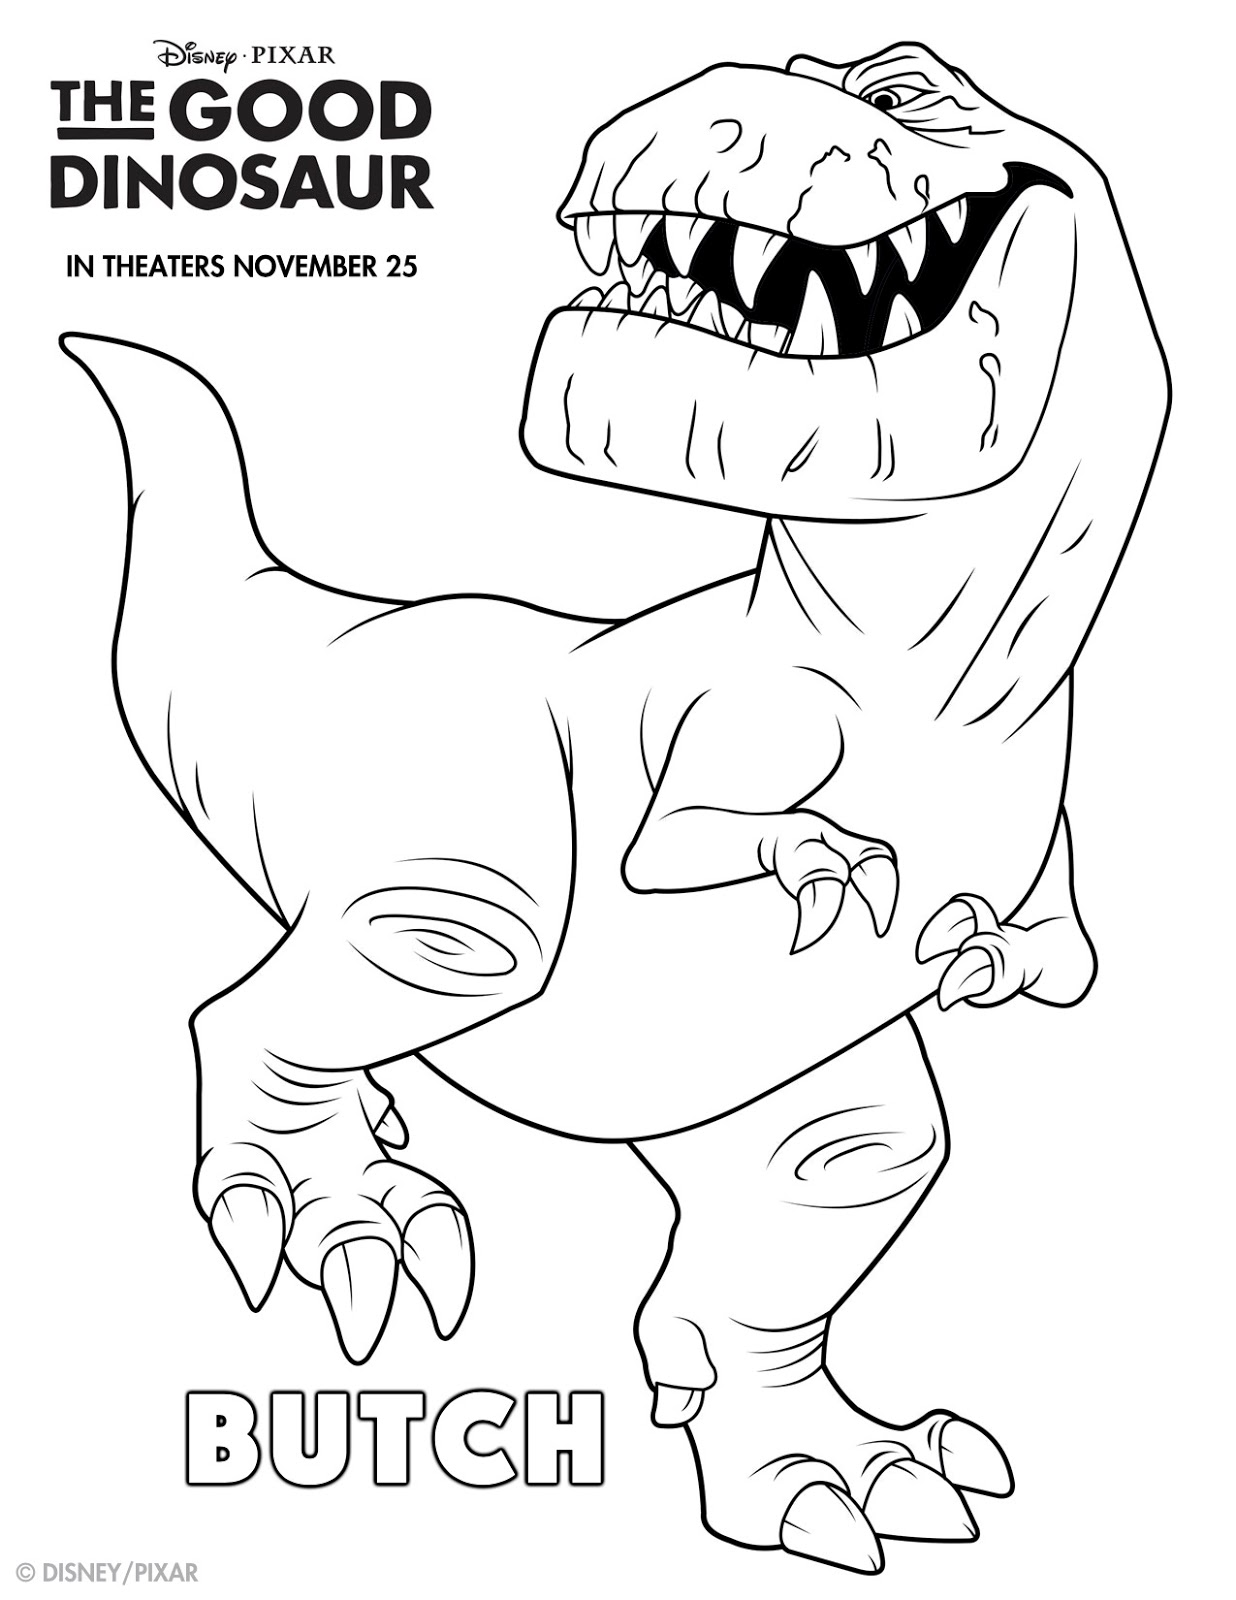 Dinosaur coloring pages baby dinosaurs coloring pages coloring page - Play Disney Good Dinosaur Color Coloring Pages Sketch Coloring Page The Good Dinosaur Event